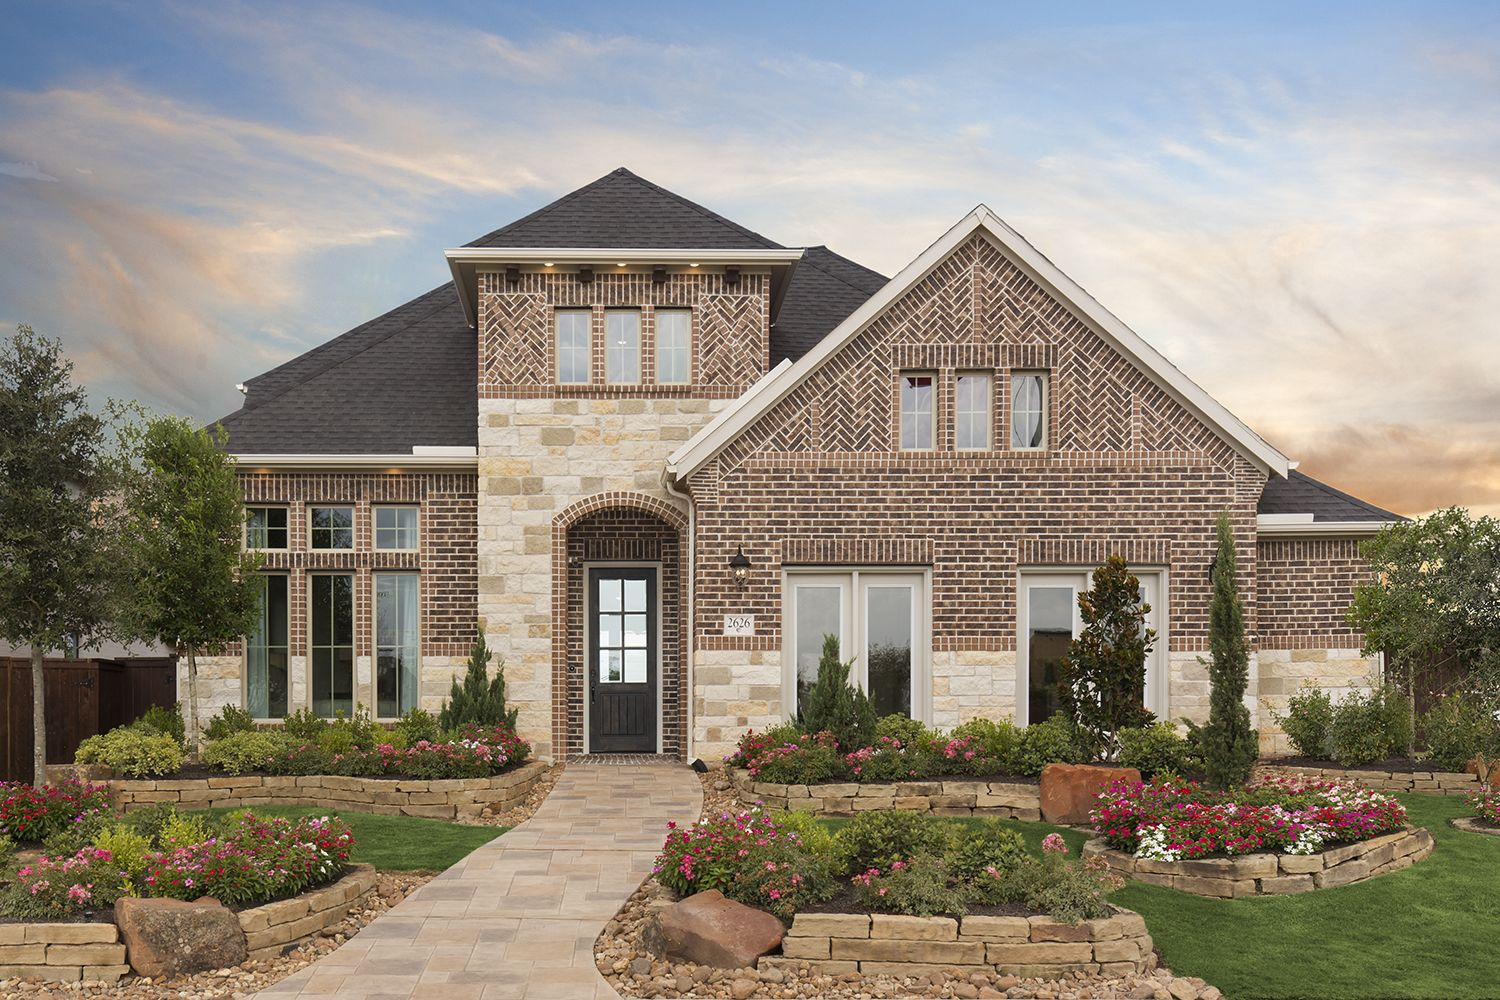 Brick And Stone Exterior Elevation Coventry Homes In Cane Island 55 Design 5402 New Home Builders Coventry Homes Home Builders